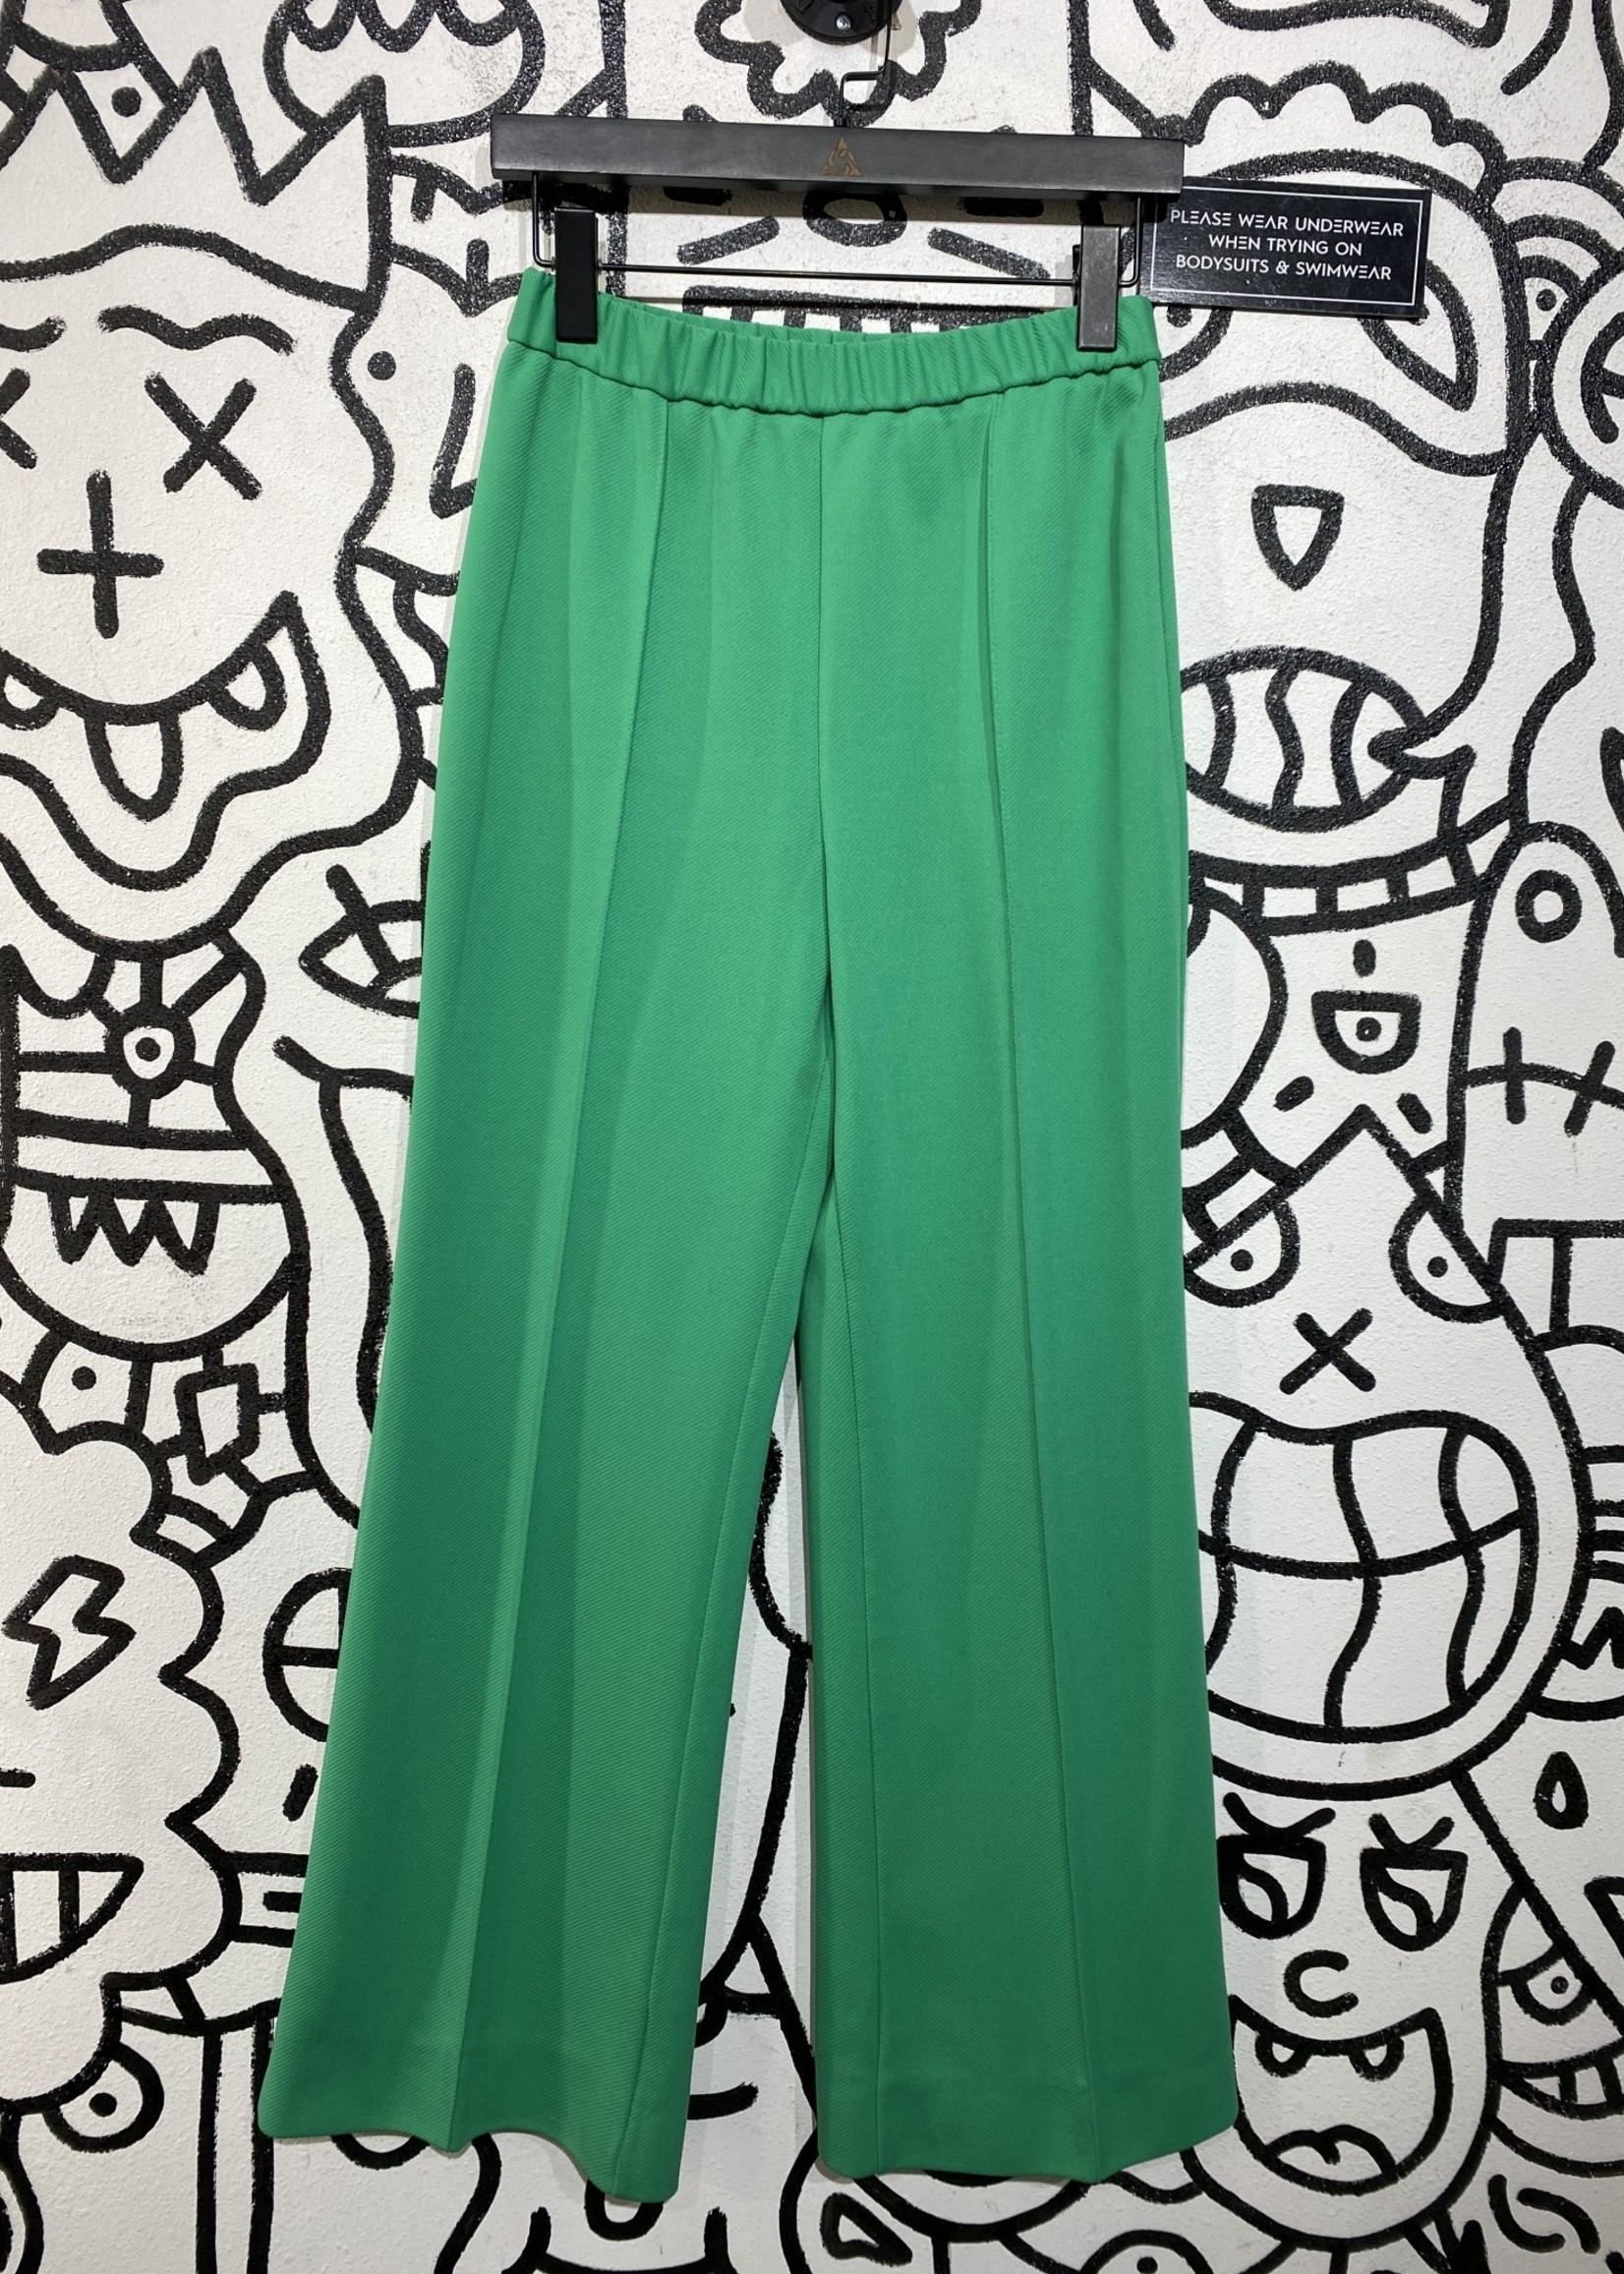 Alex coleman green flare trousers 26